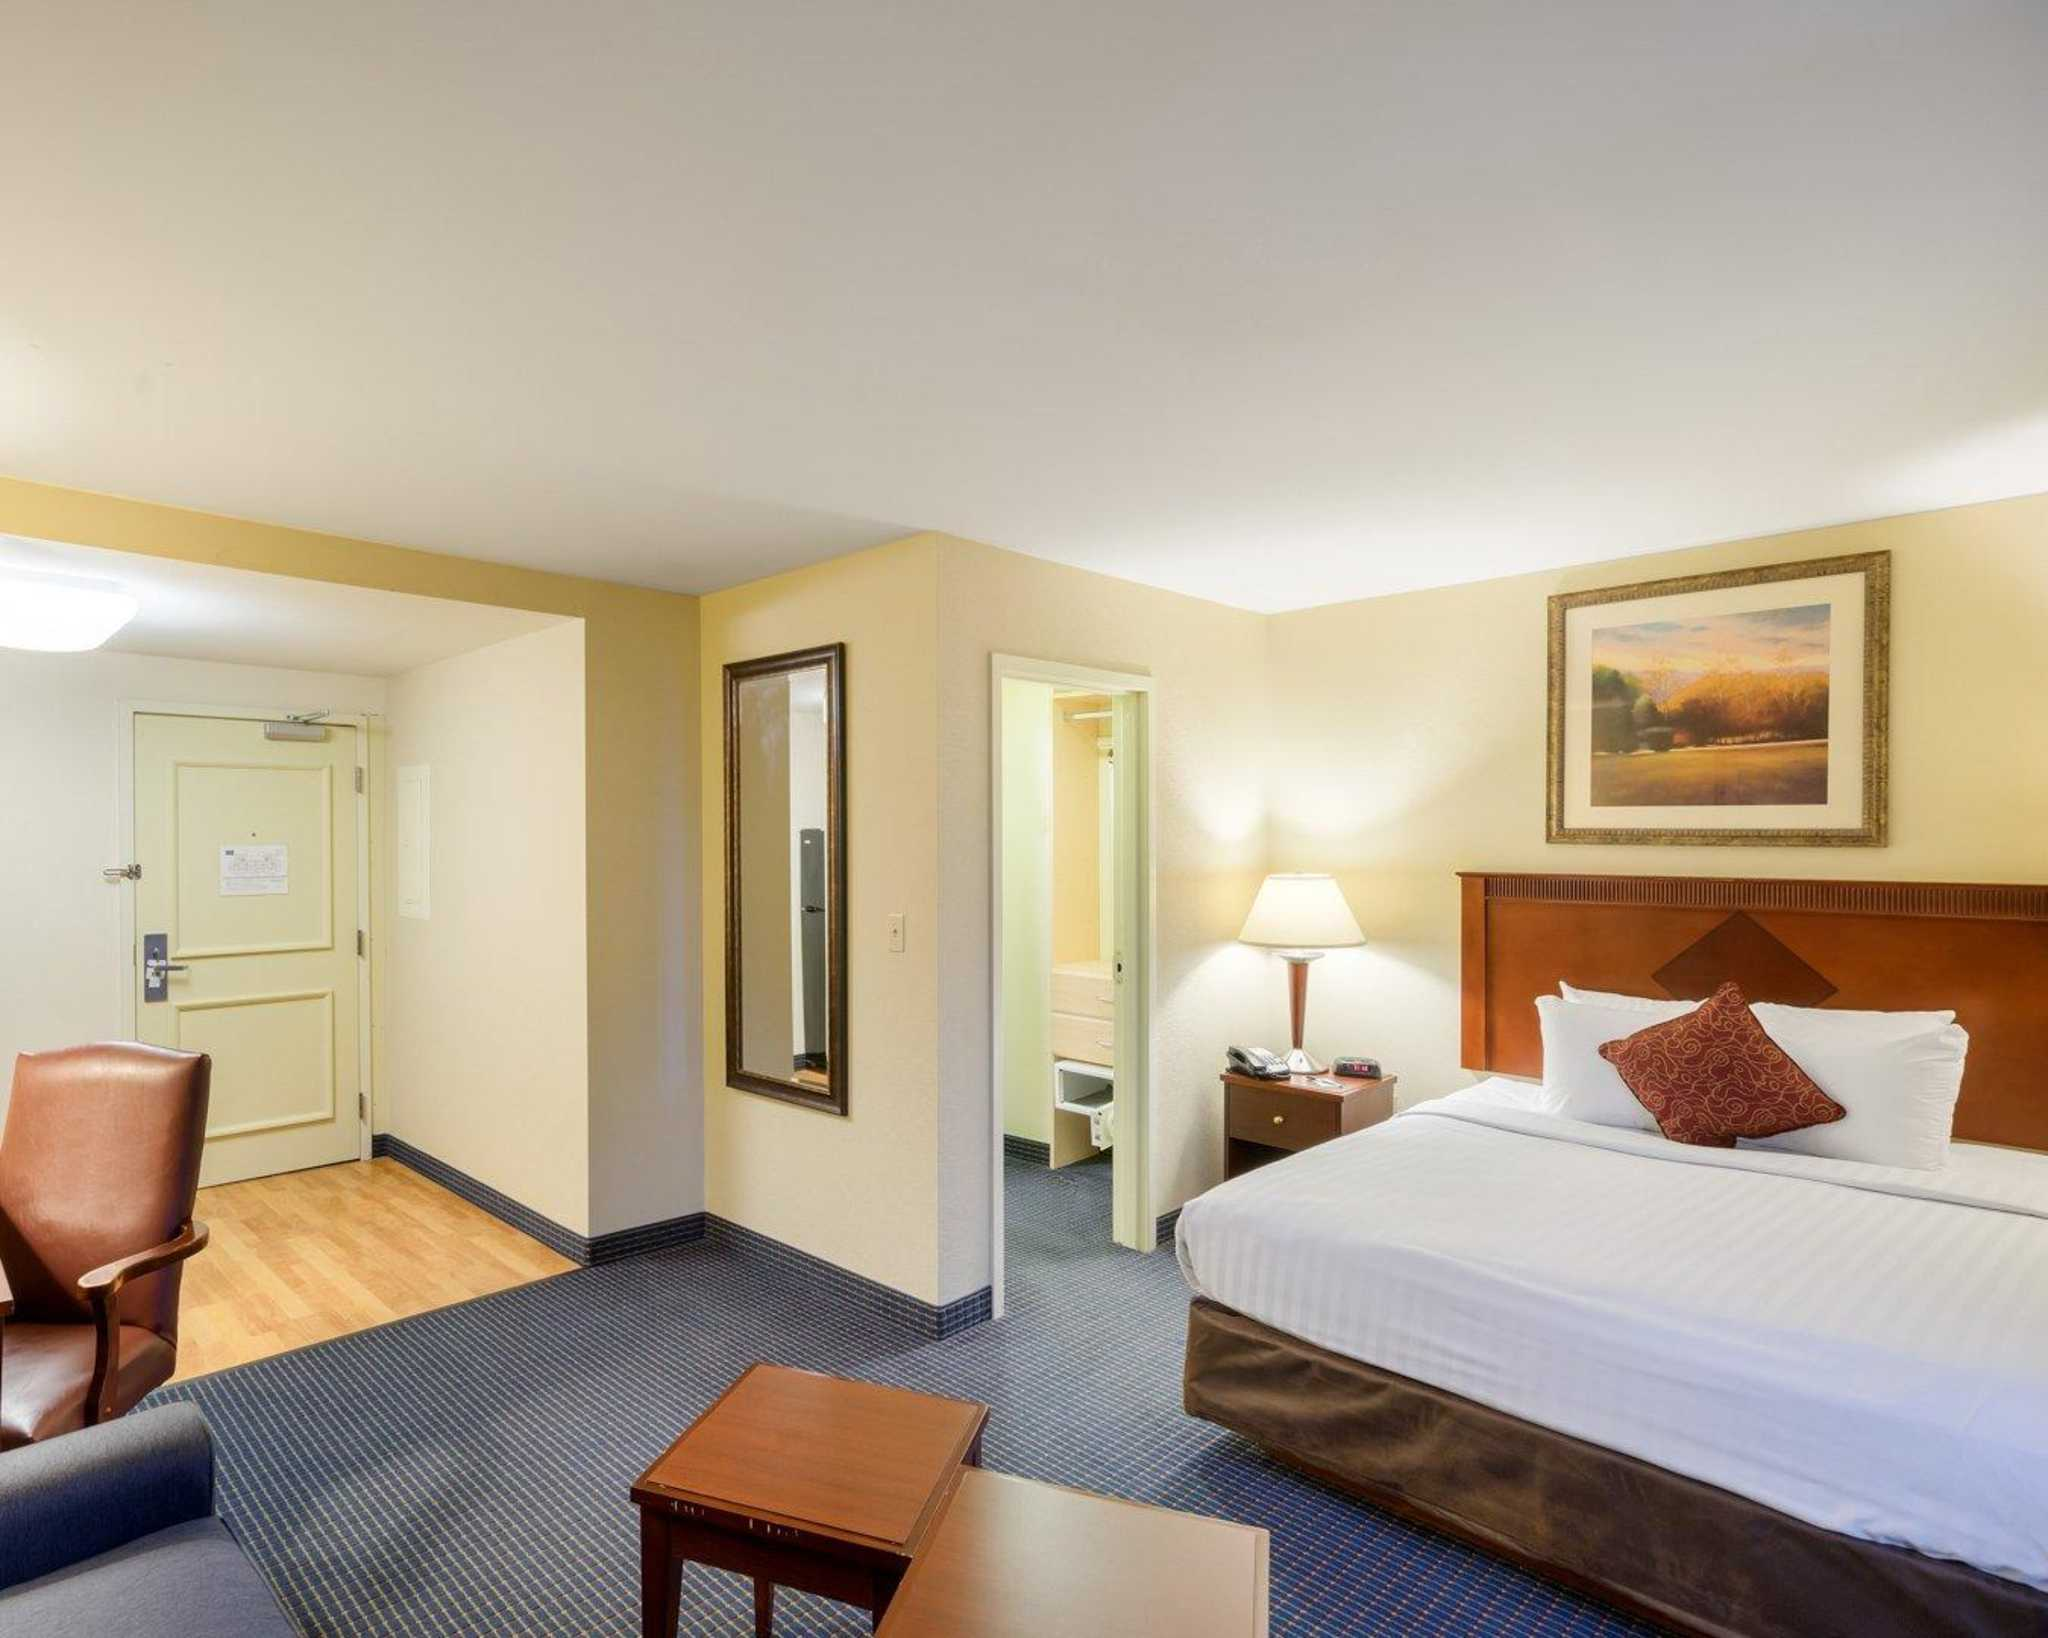 MainStay Suites image 0